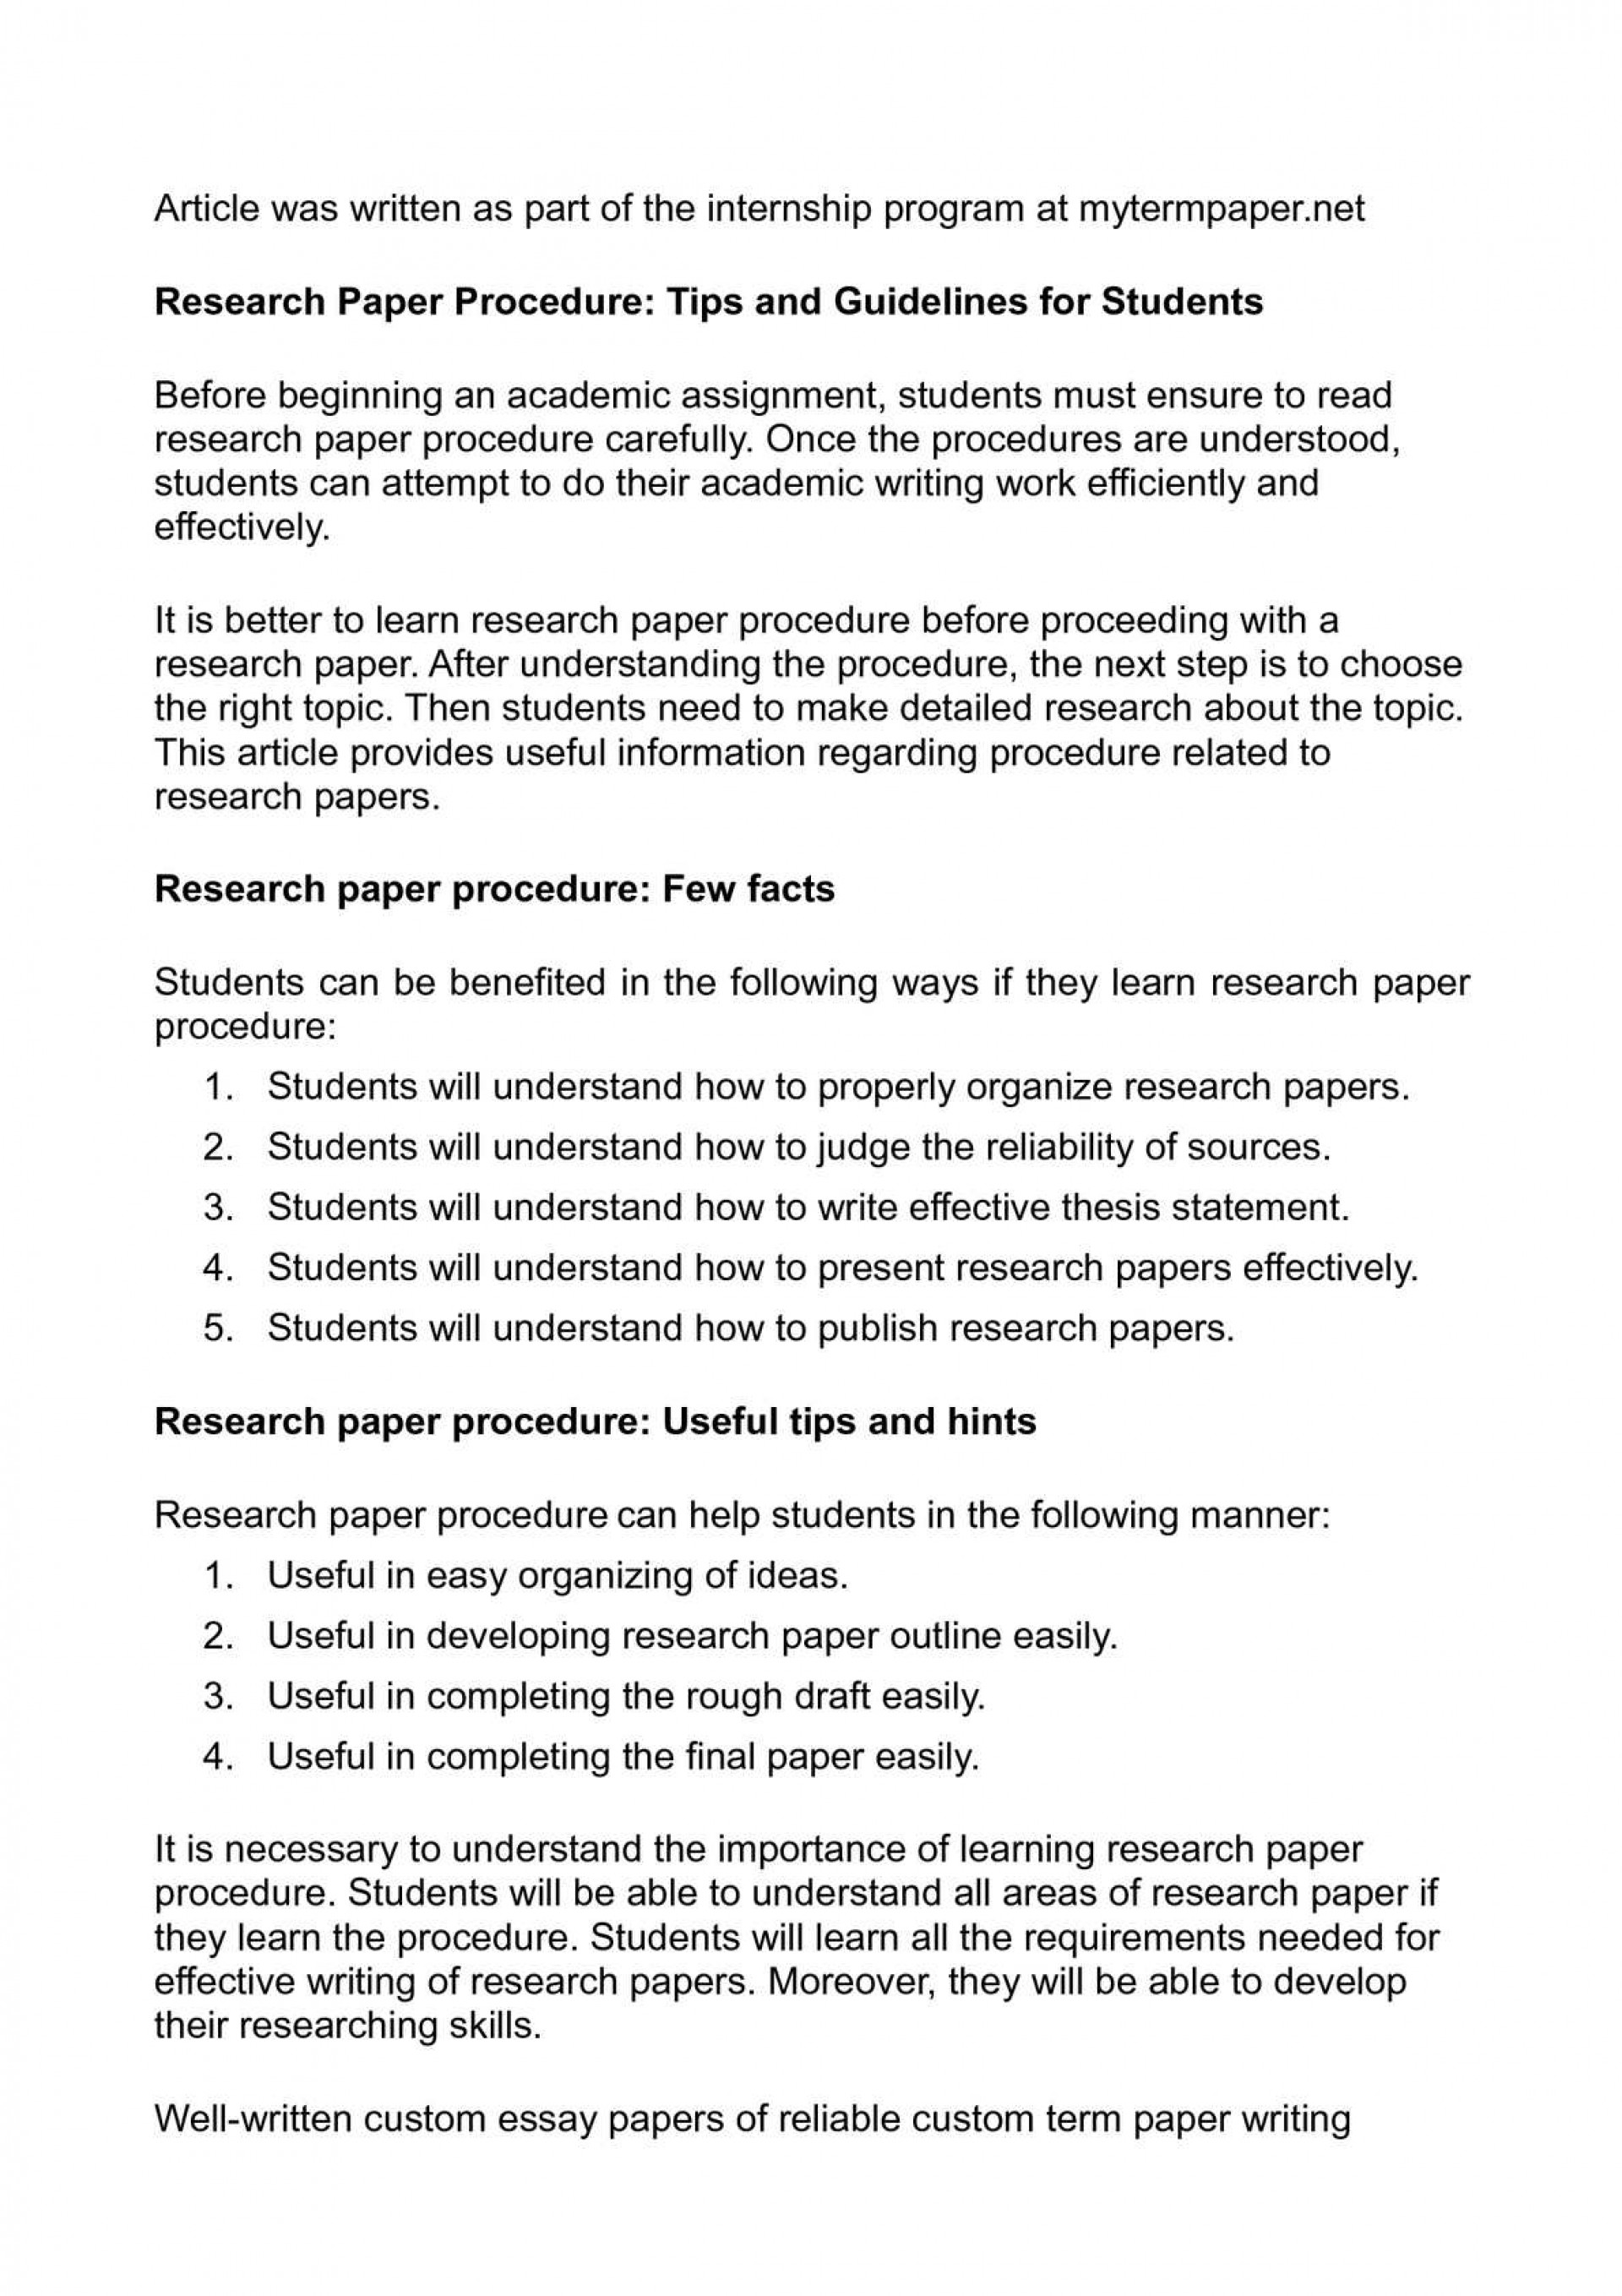 018 How To Do Research Paper Marvelous In Text Citations A Mla Write Introduction Format 1920